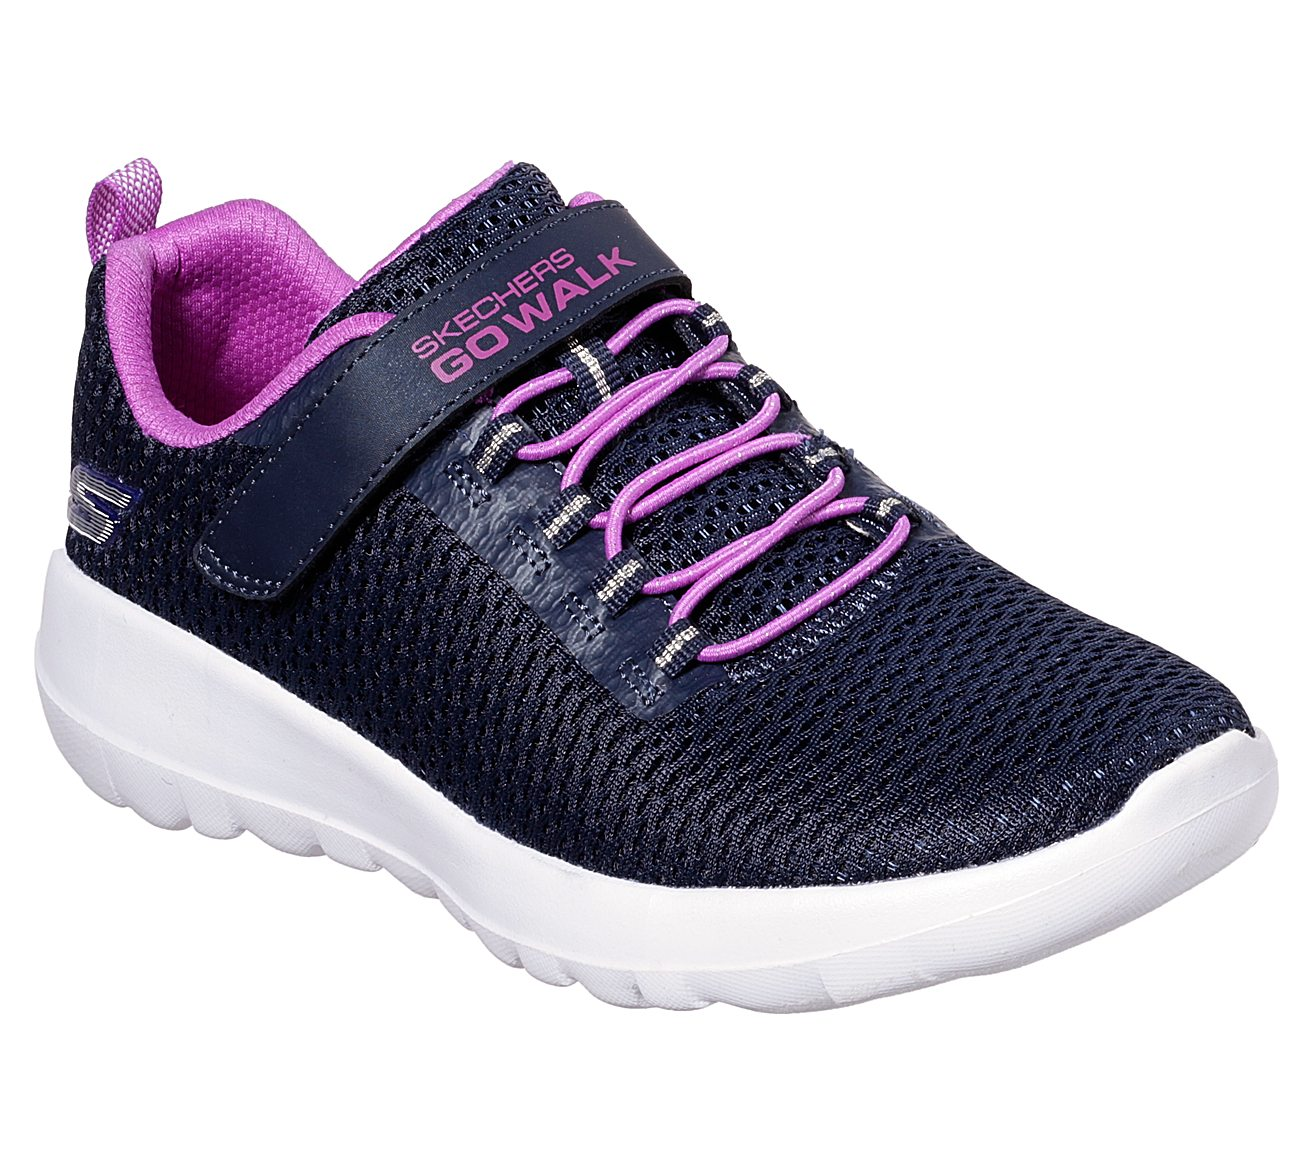 cbea5768b7 Skechers , Sandy | Tuggl - local retail stores online!